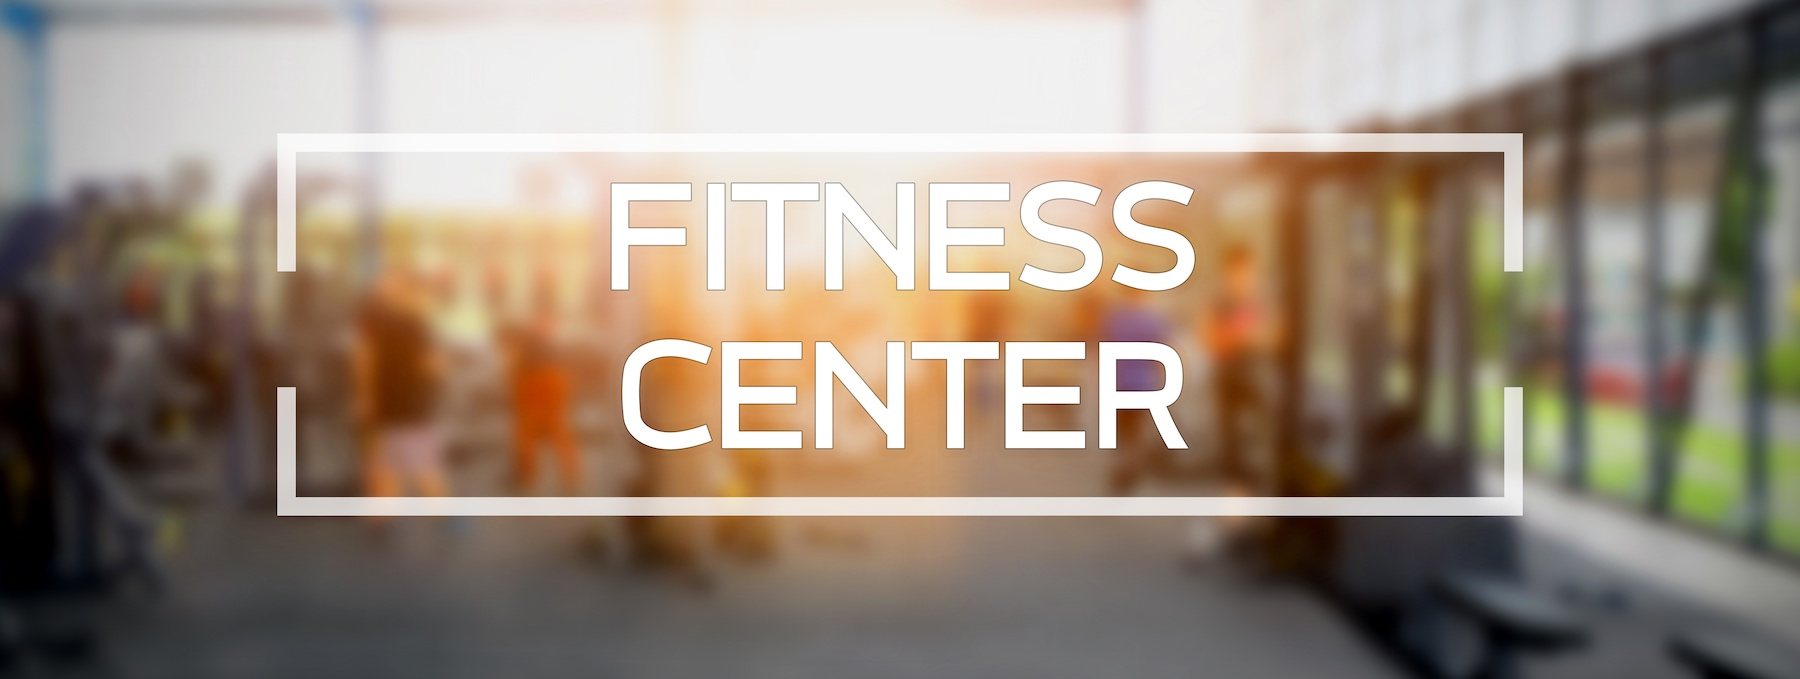 Fitness center word on fitness gym blur background banner presentation.